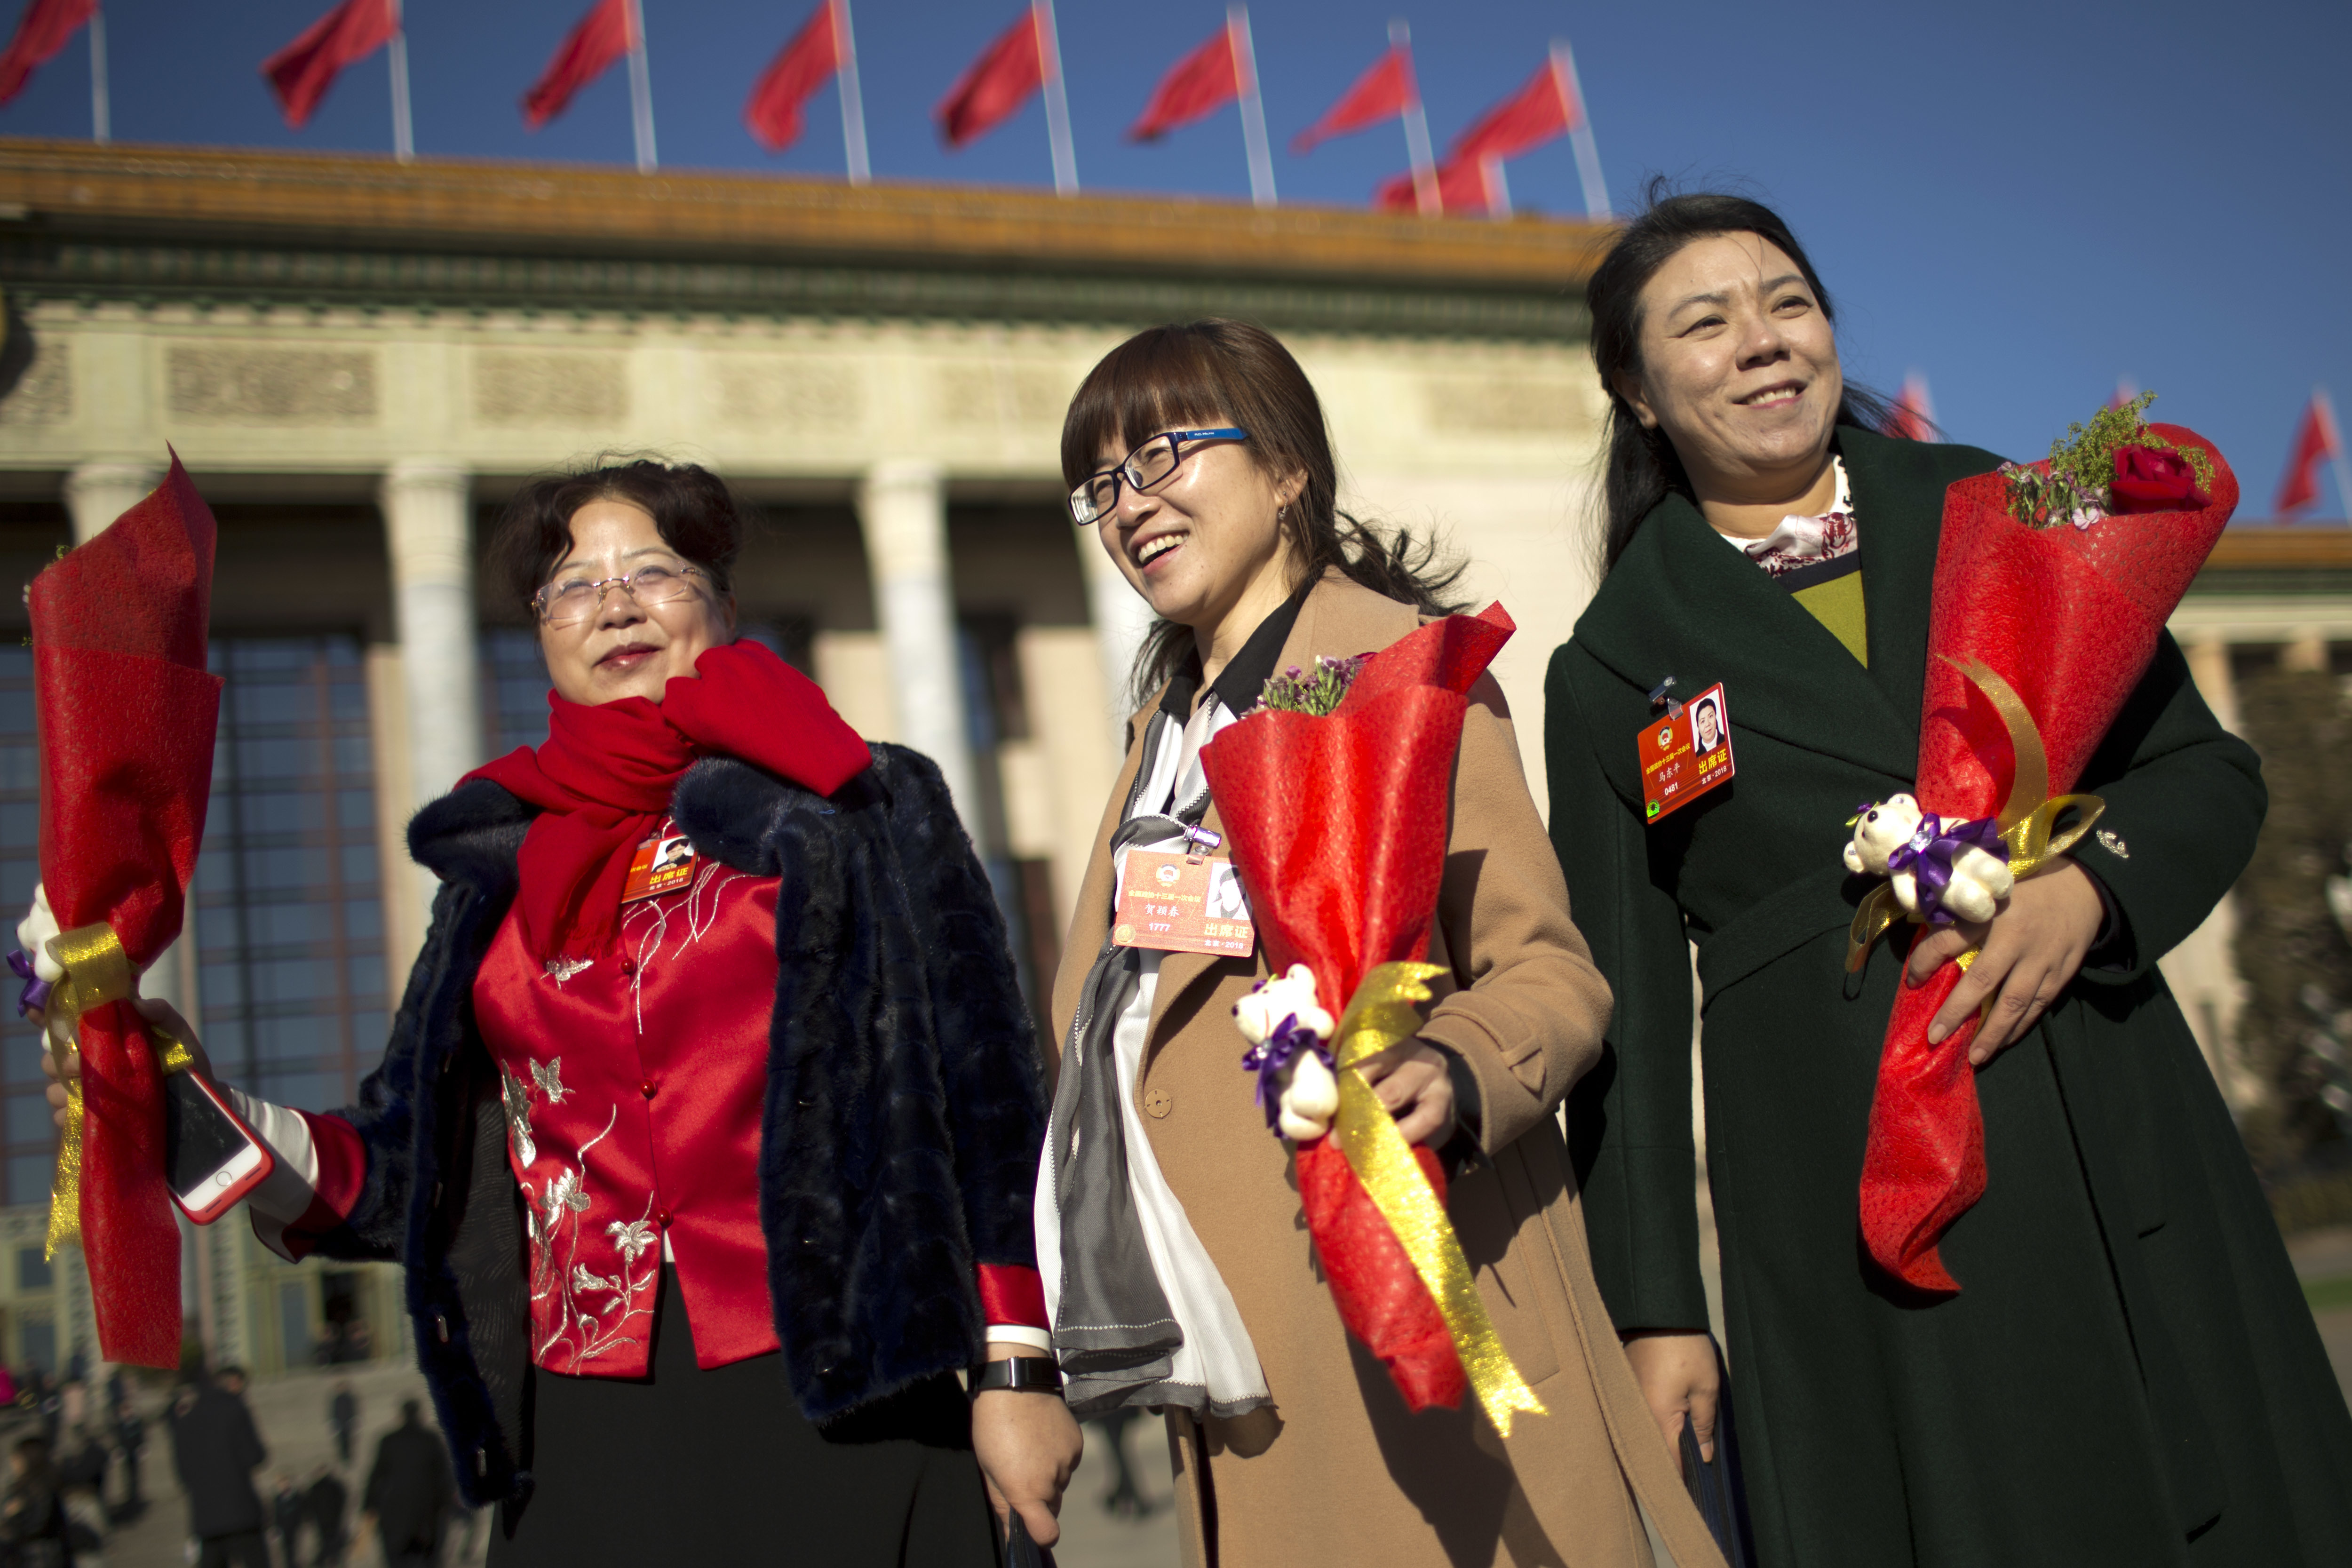 Delegates hold flower bouquets for International Women's Day as they arrive for a plenary session of the Chinese People's Political Consultative Conference (CPPCC) at the Great Hall of the People in Beijing, Thursday, March 8, 2018. Students at China's prestigious Tsinghua University are celebrating International Women's Day with banners making light of a proposed constitutional amendment to scrap term limits for the country's president. (AP Photo/Mark Schiefelbein)